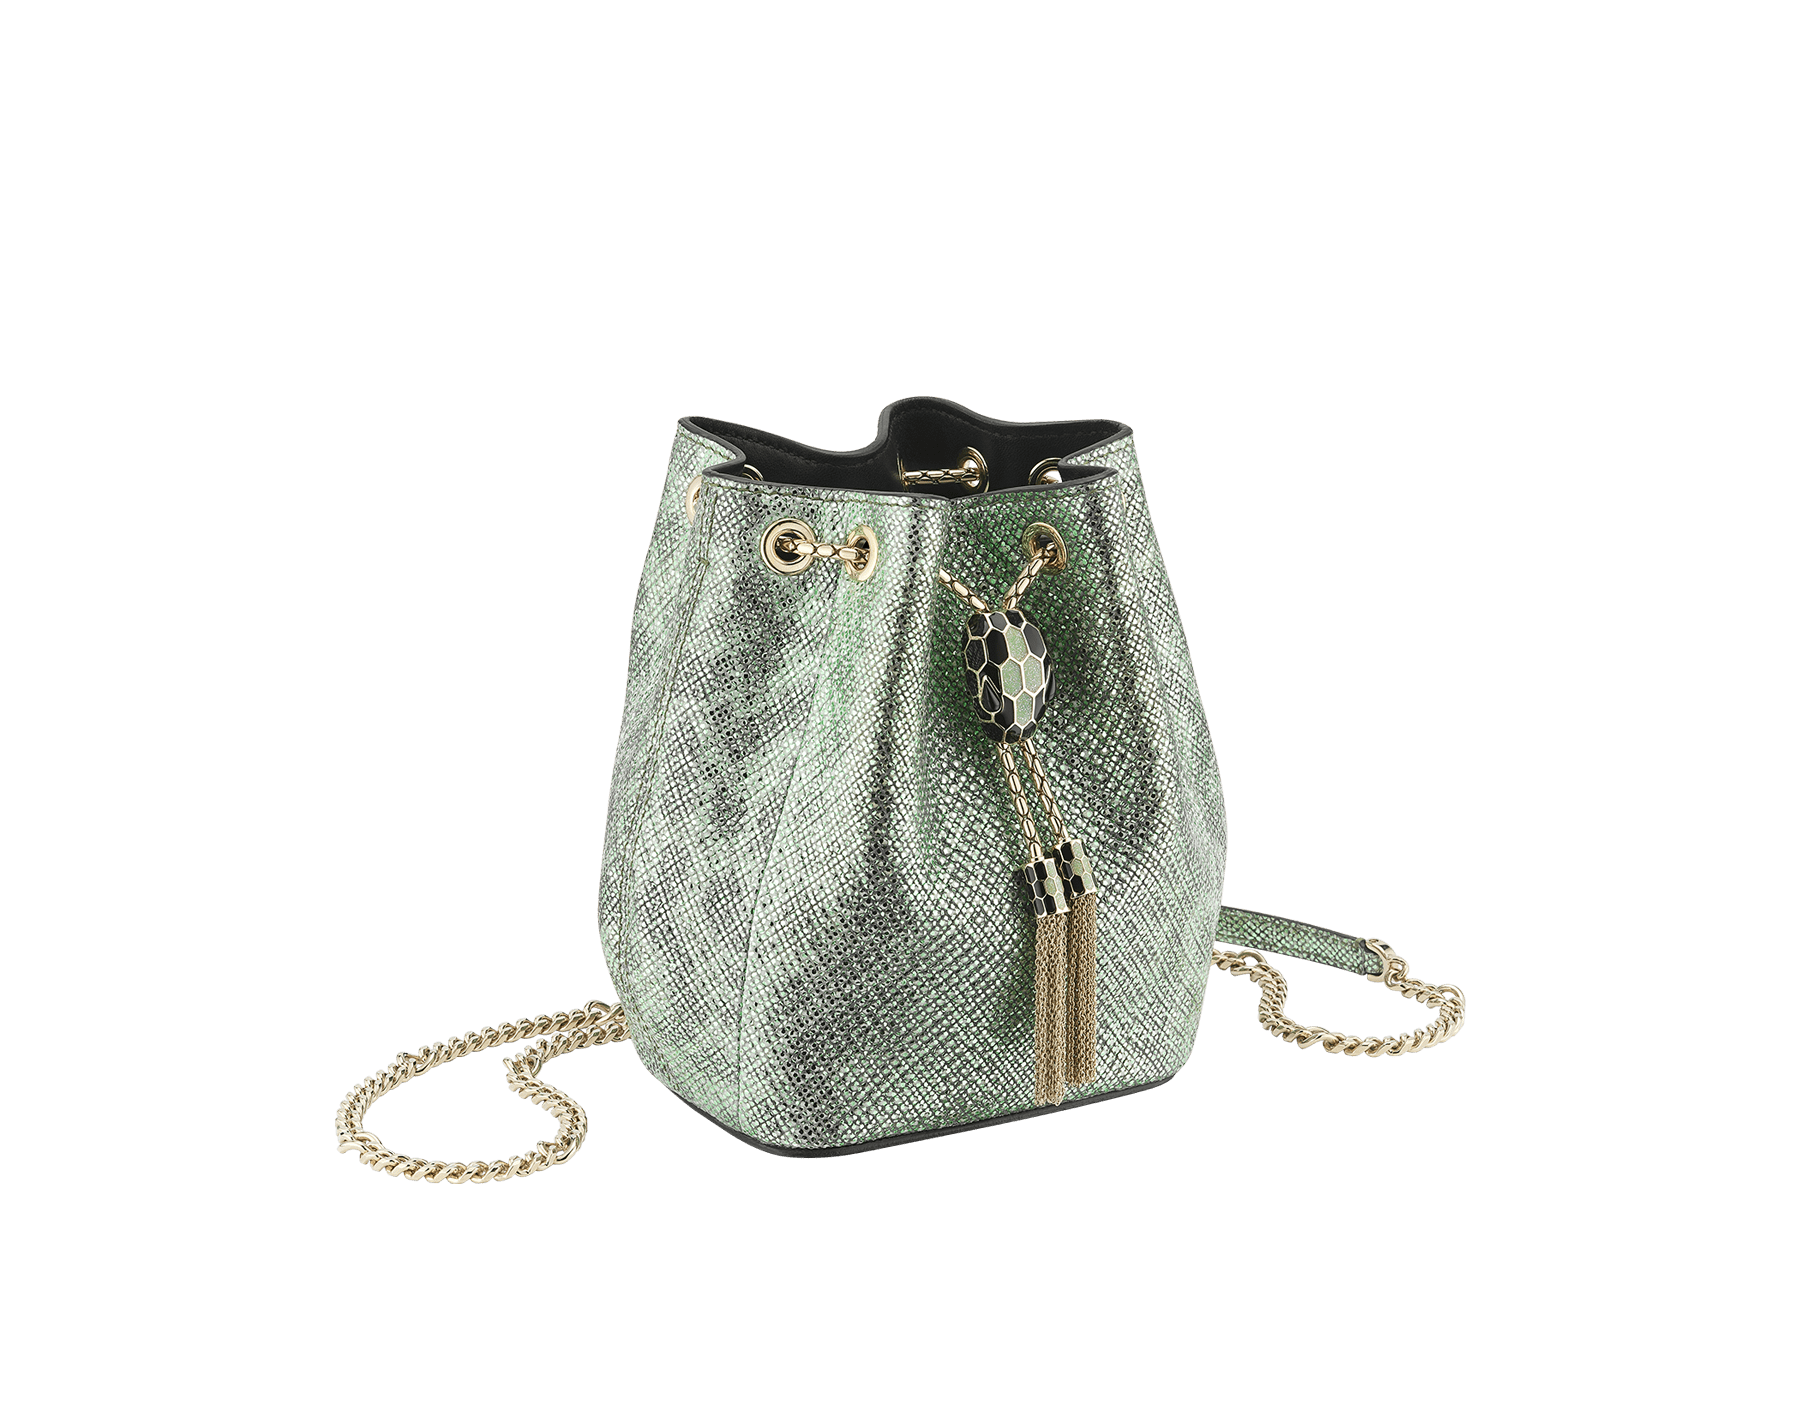 """Serpenti Forever"" micro bucket in white agate metallic karung skin and black nappa internal lining. Hardware in light gold plated brass and snakehead closure in black and white agate enamel, with eyes in black onyx. 1073-MK image 2"